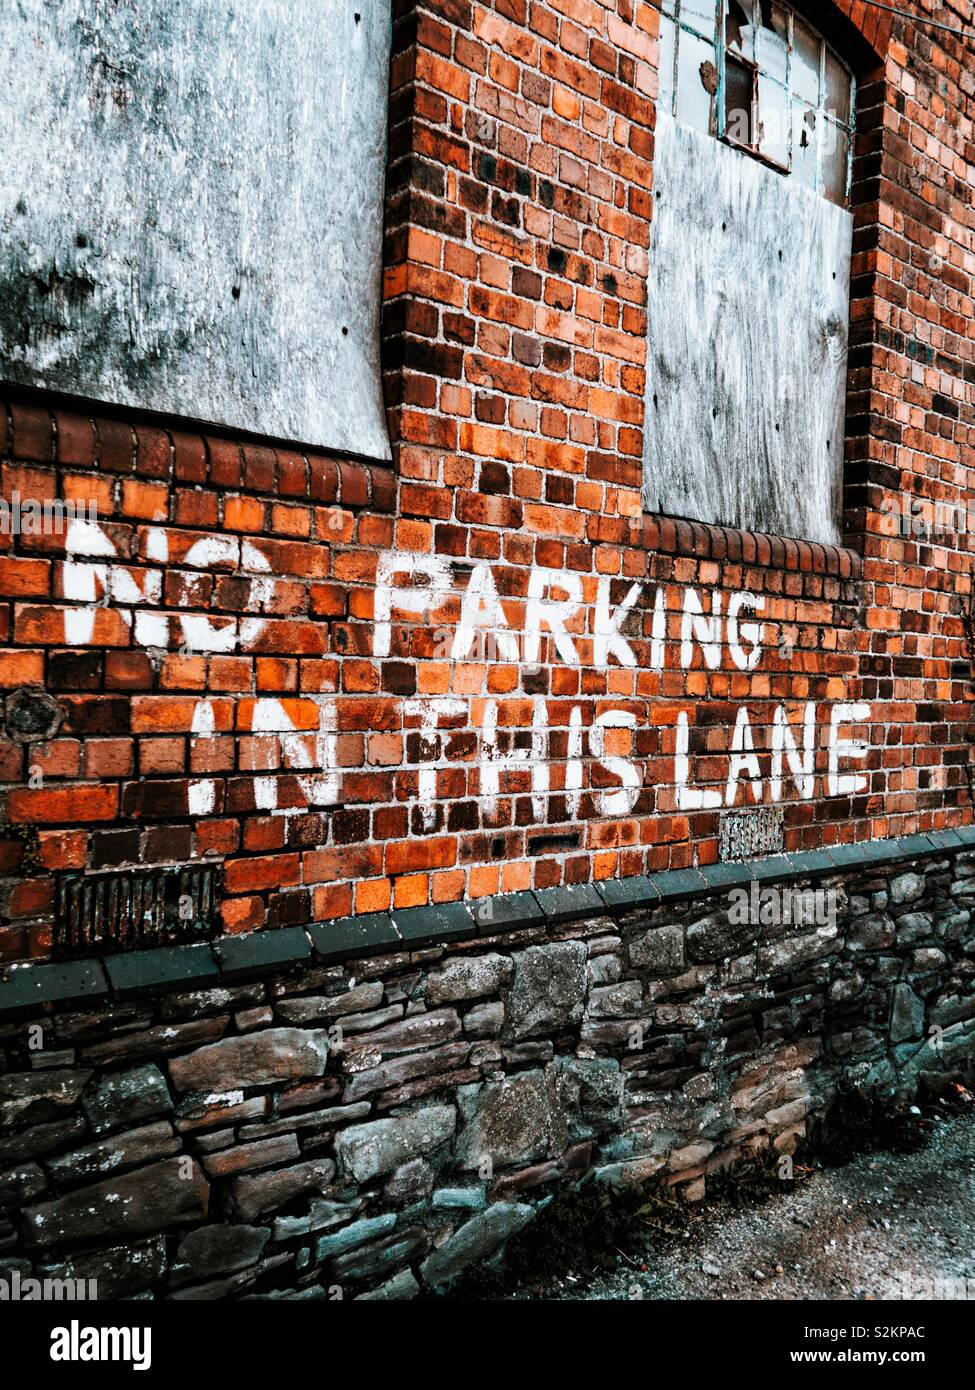 No parking in this lane written on a old red brick wall - Stock Image